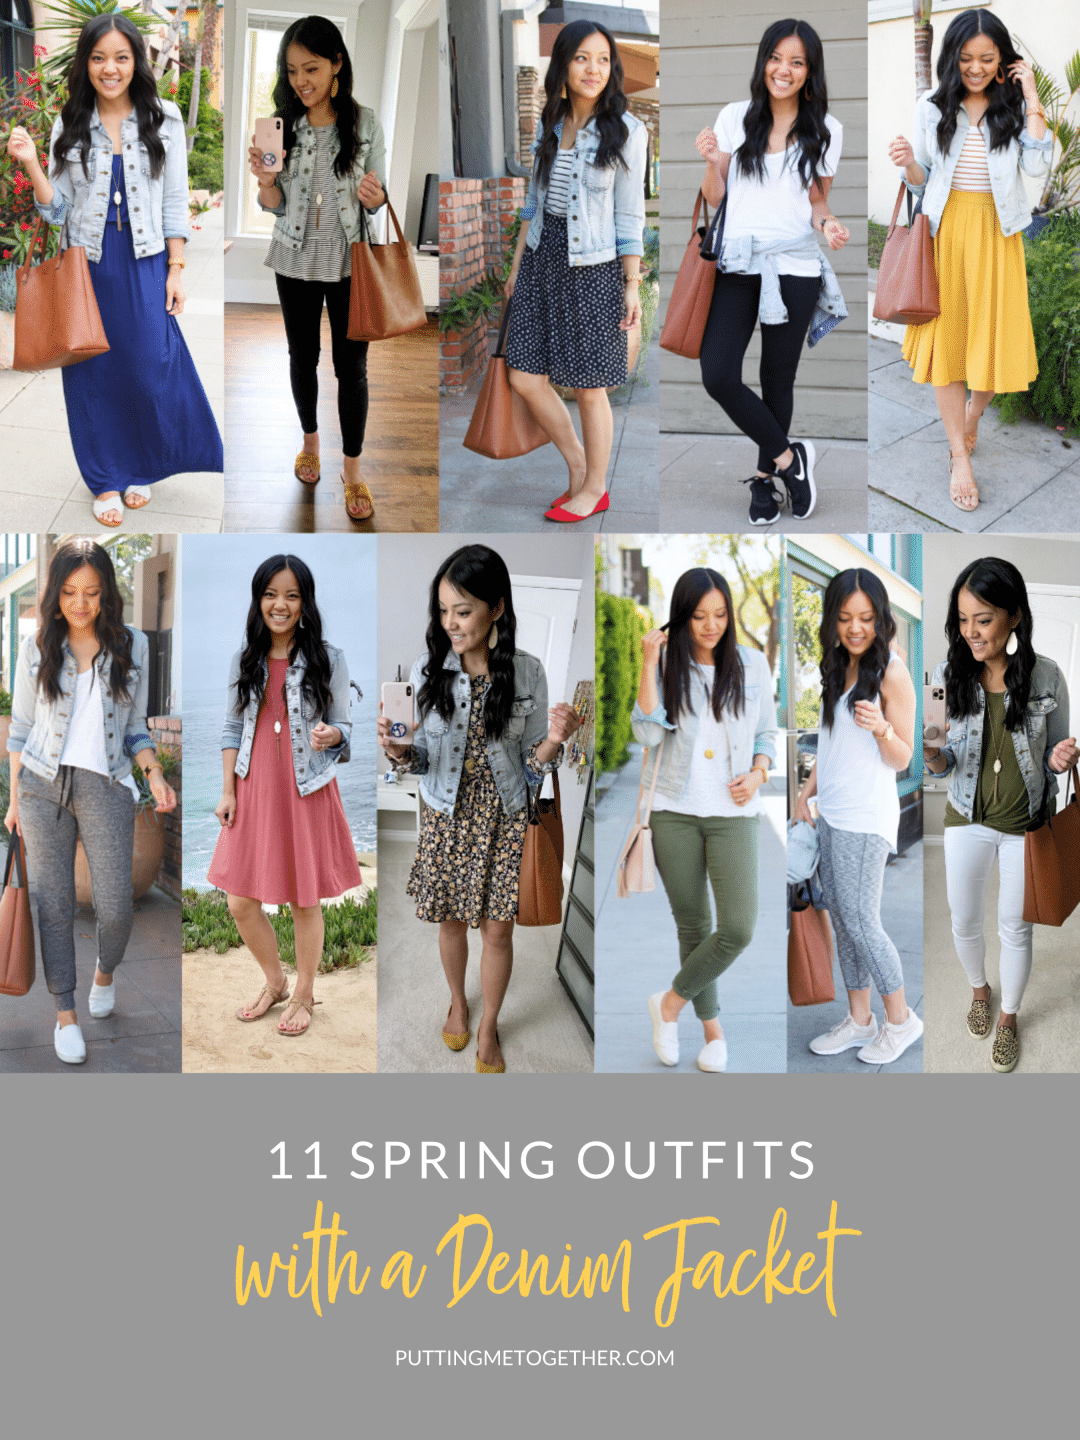 11 Spring Outfits With a Denim Jacket You Can Copy